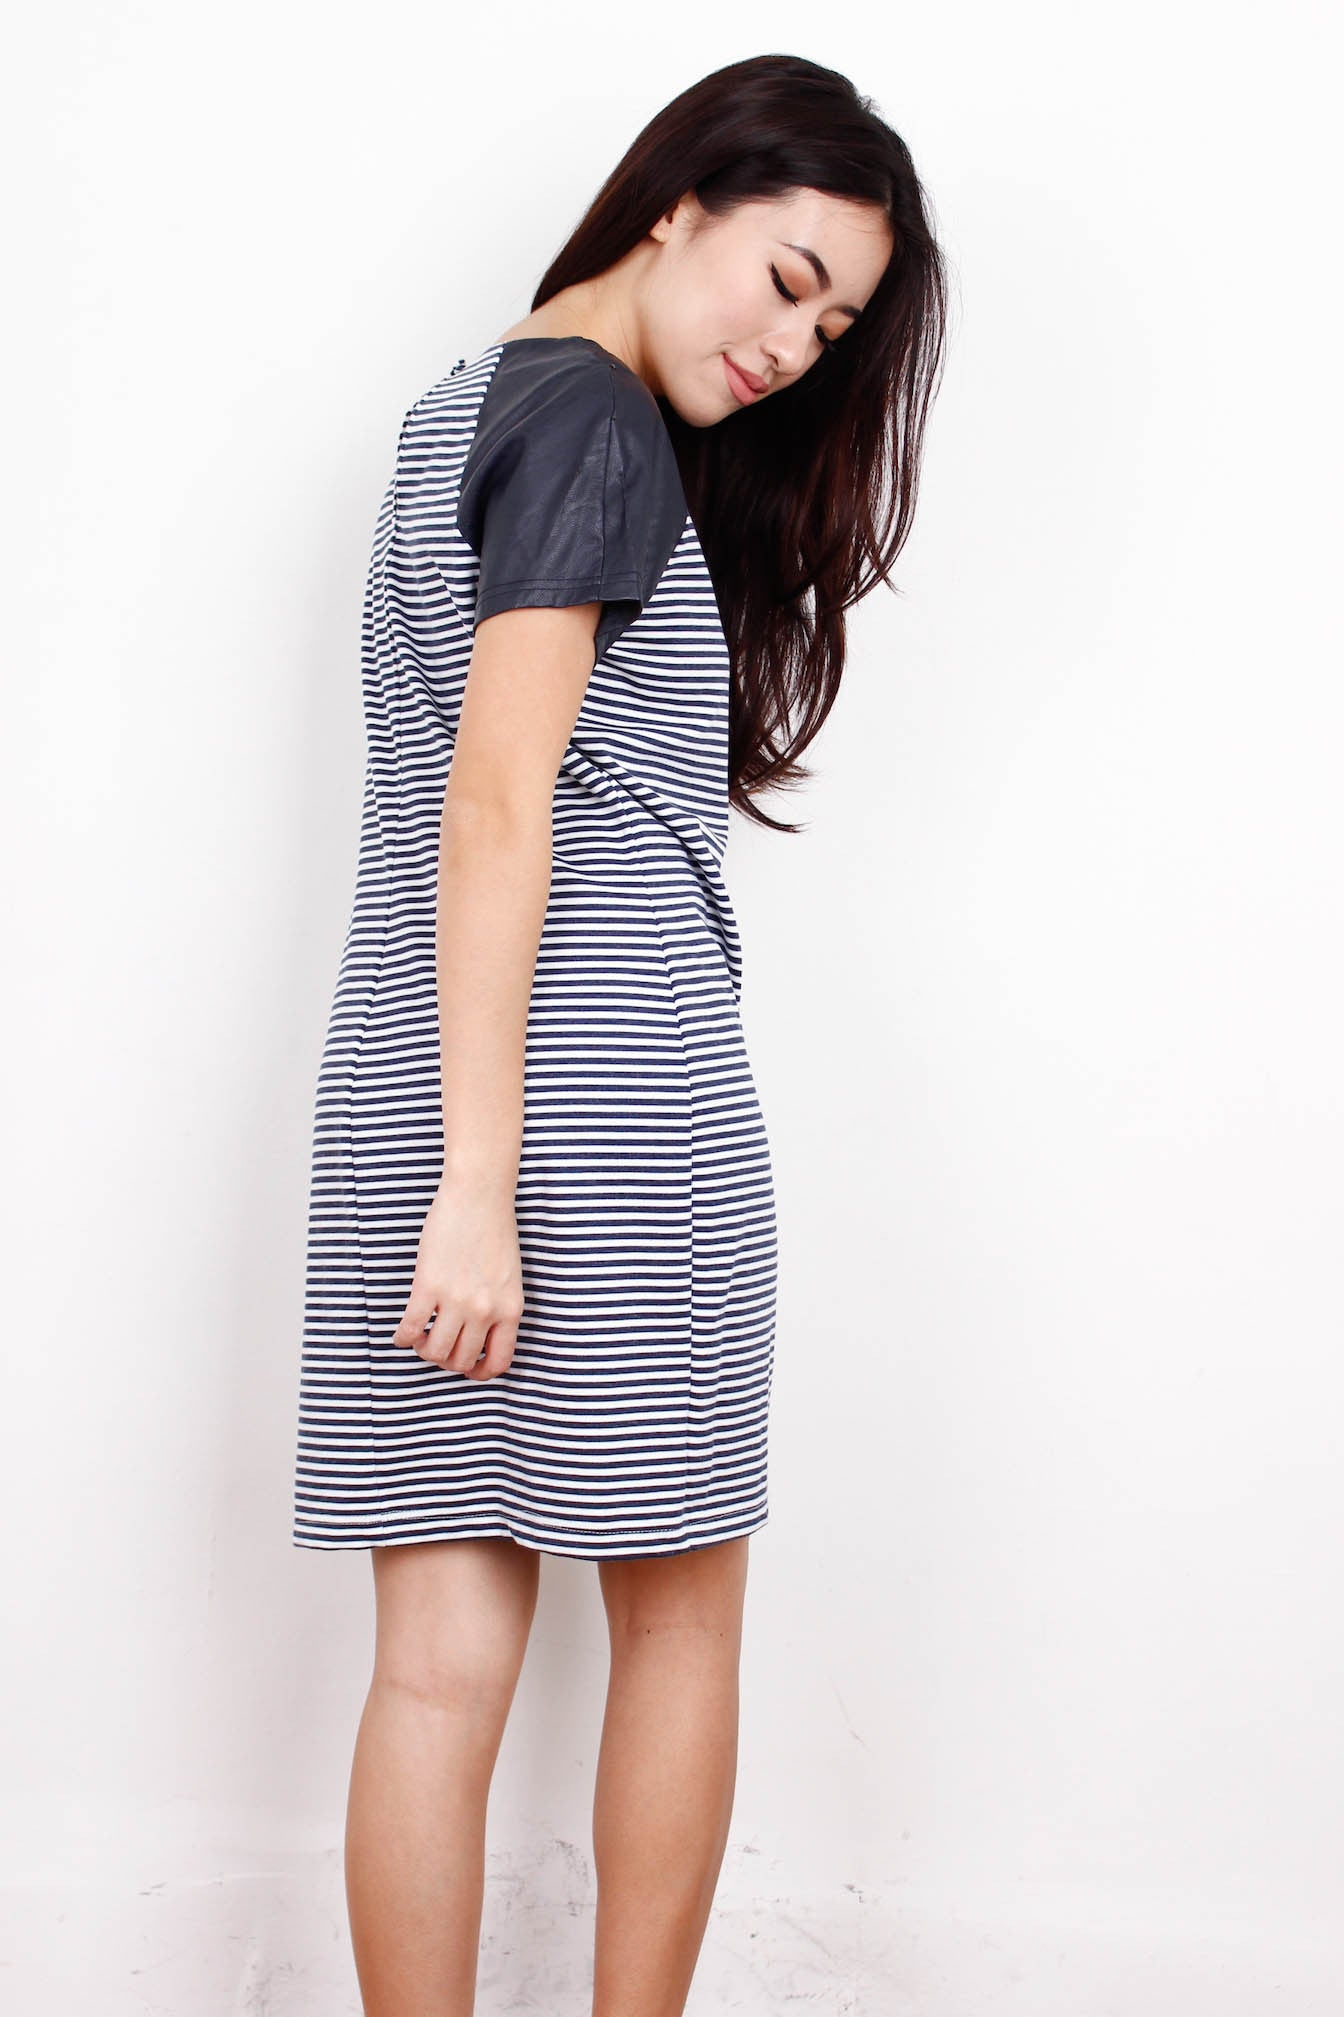 [DOROTHY PERKINS] Leather Sleeve Striped Dress